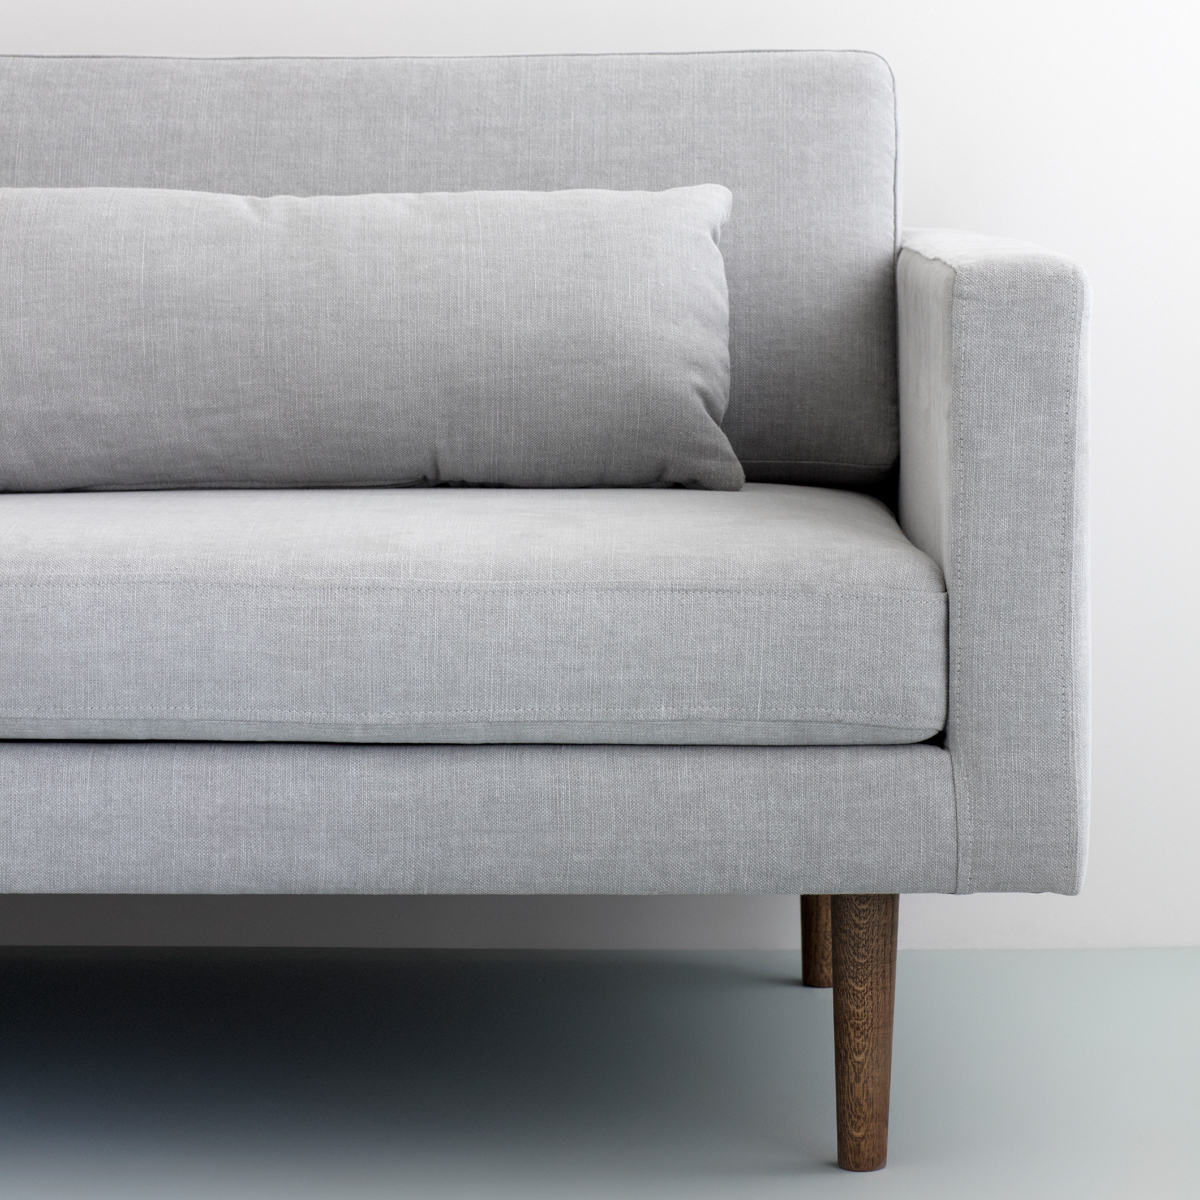 Broste-Copenhagen-Grey-Air-Sofa